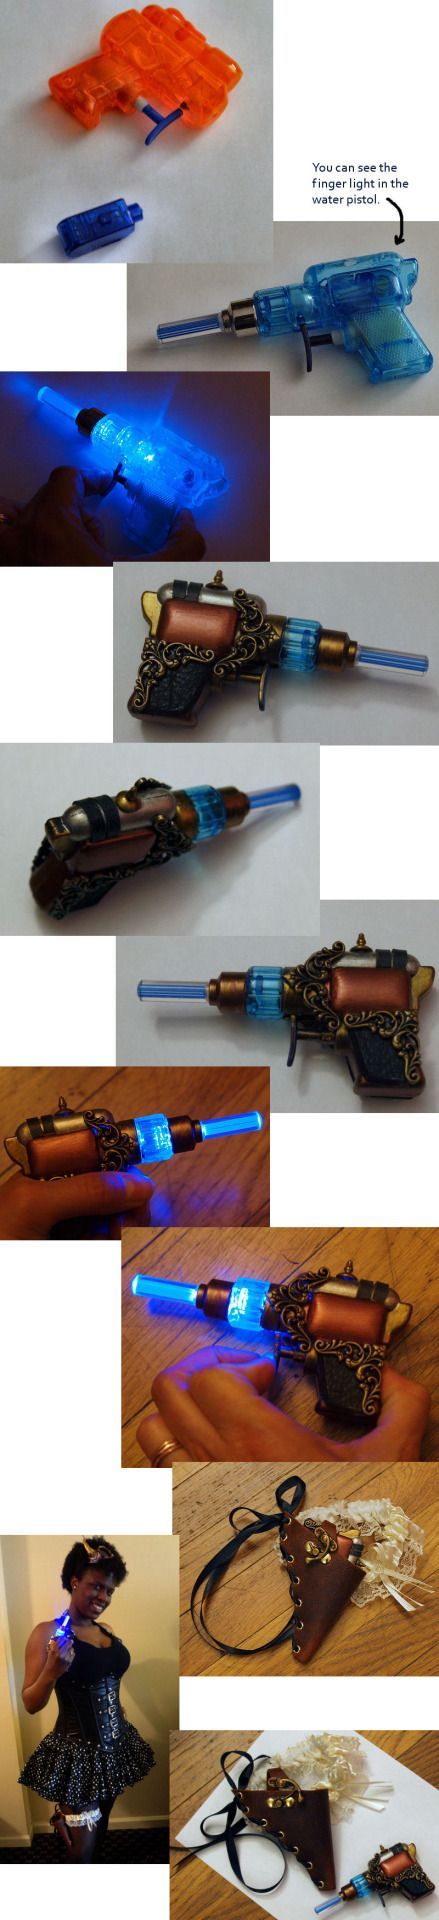 Steampunk Lady Killer Pistol and Garter Holsterby *ajldesign